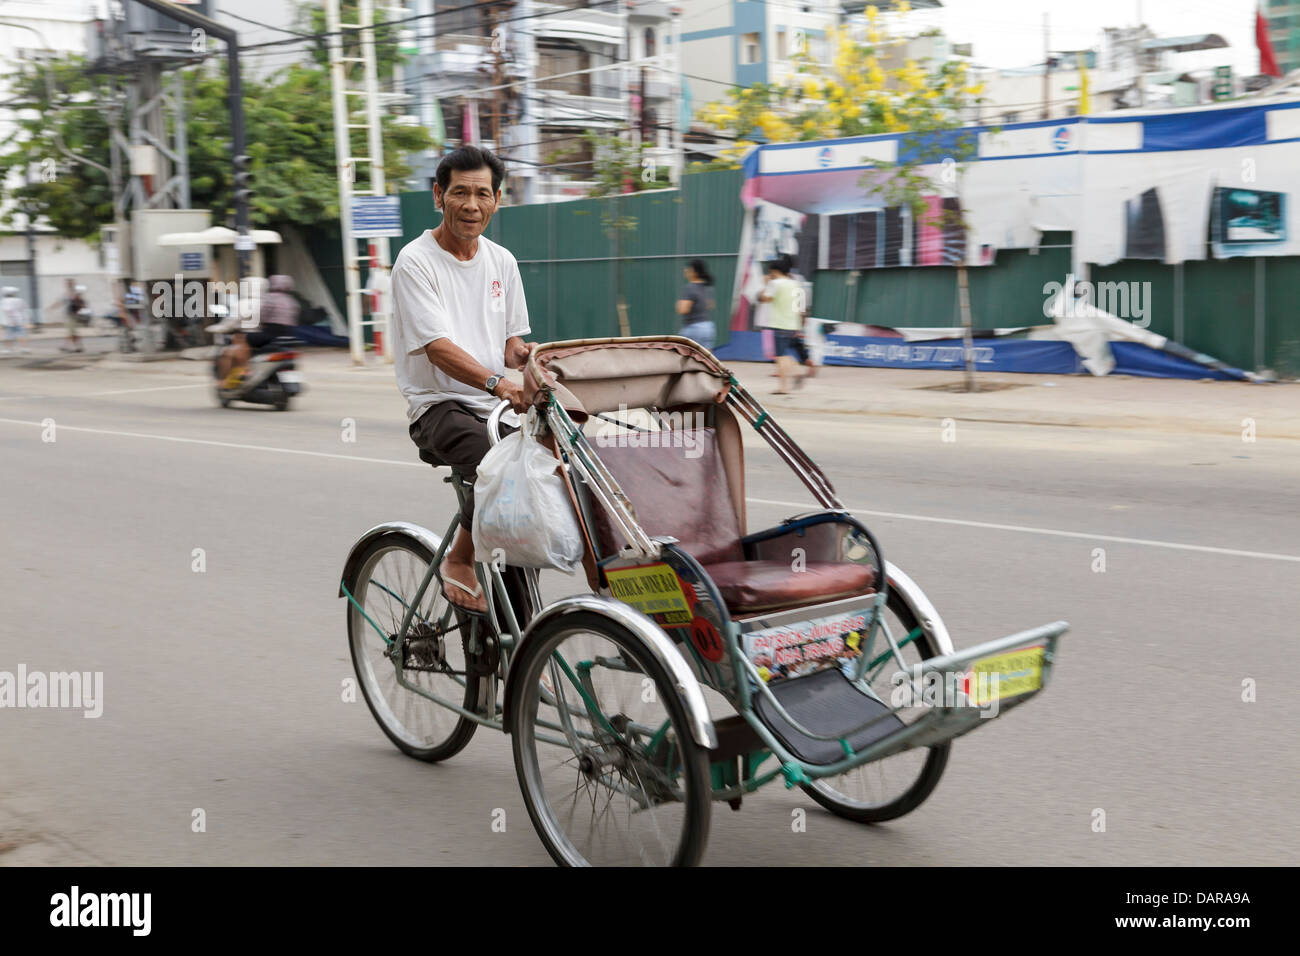 A man riding a tricycle taxi, Nha Trang, Vietnam, South East Asia. Stock Photo